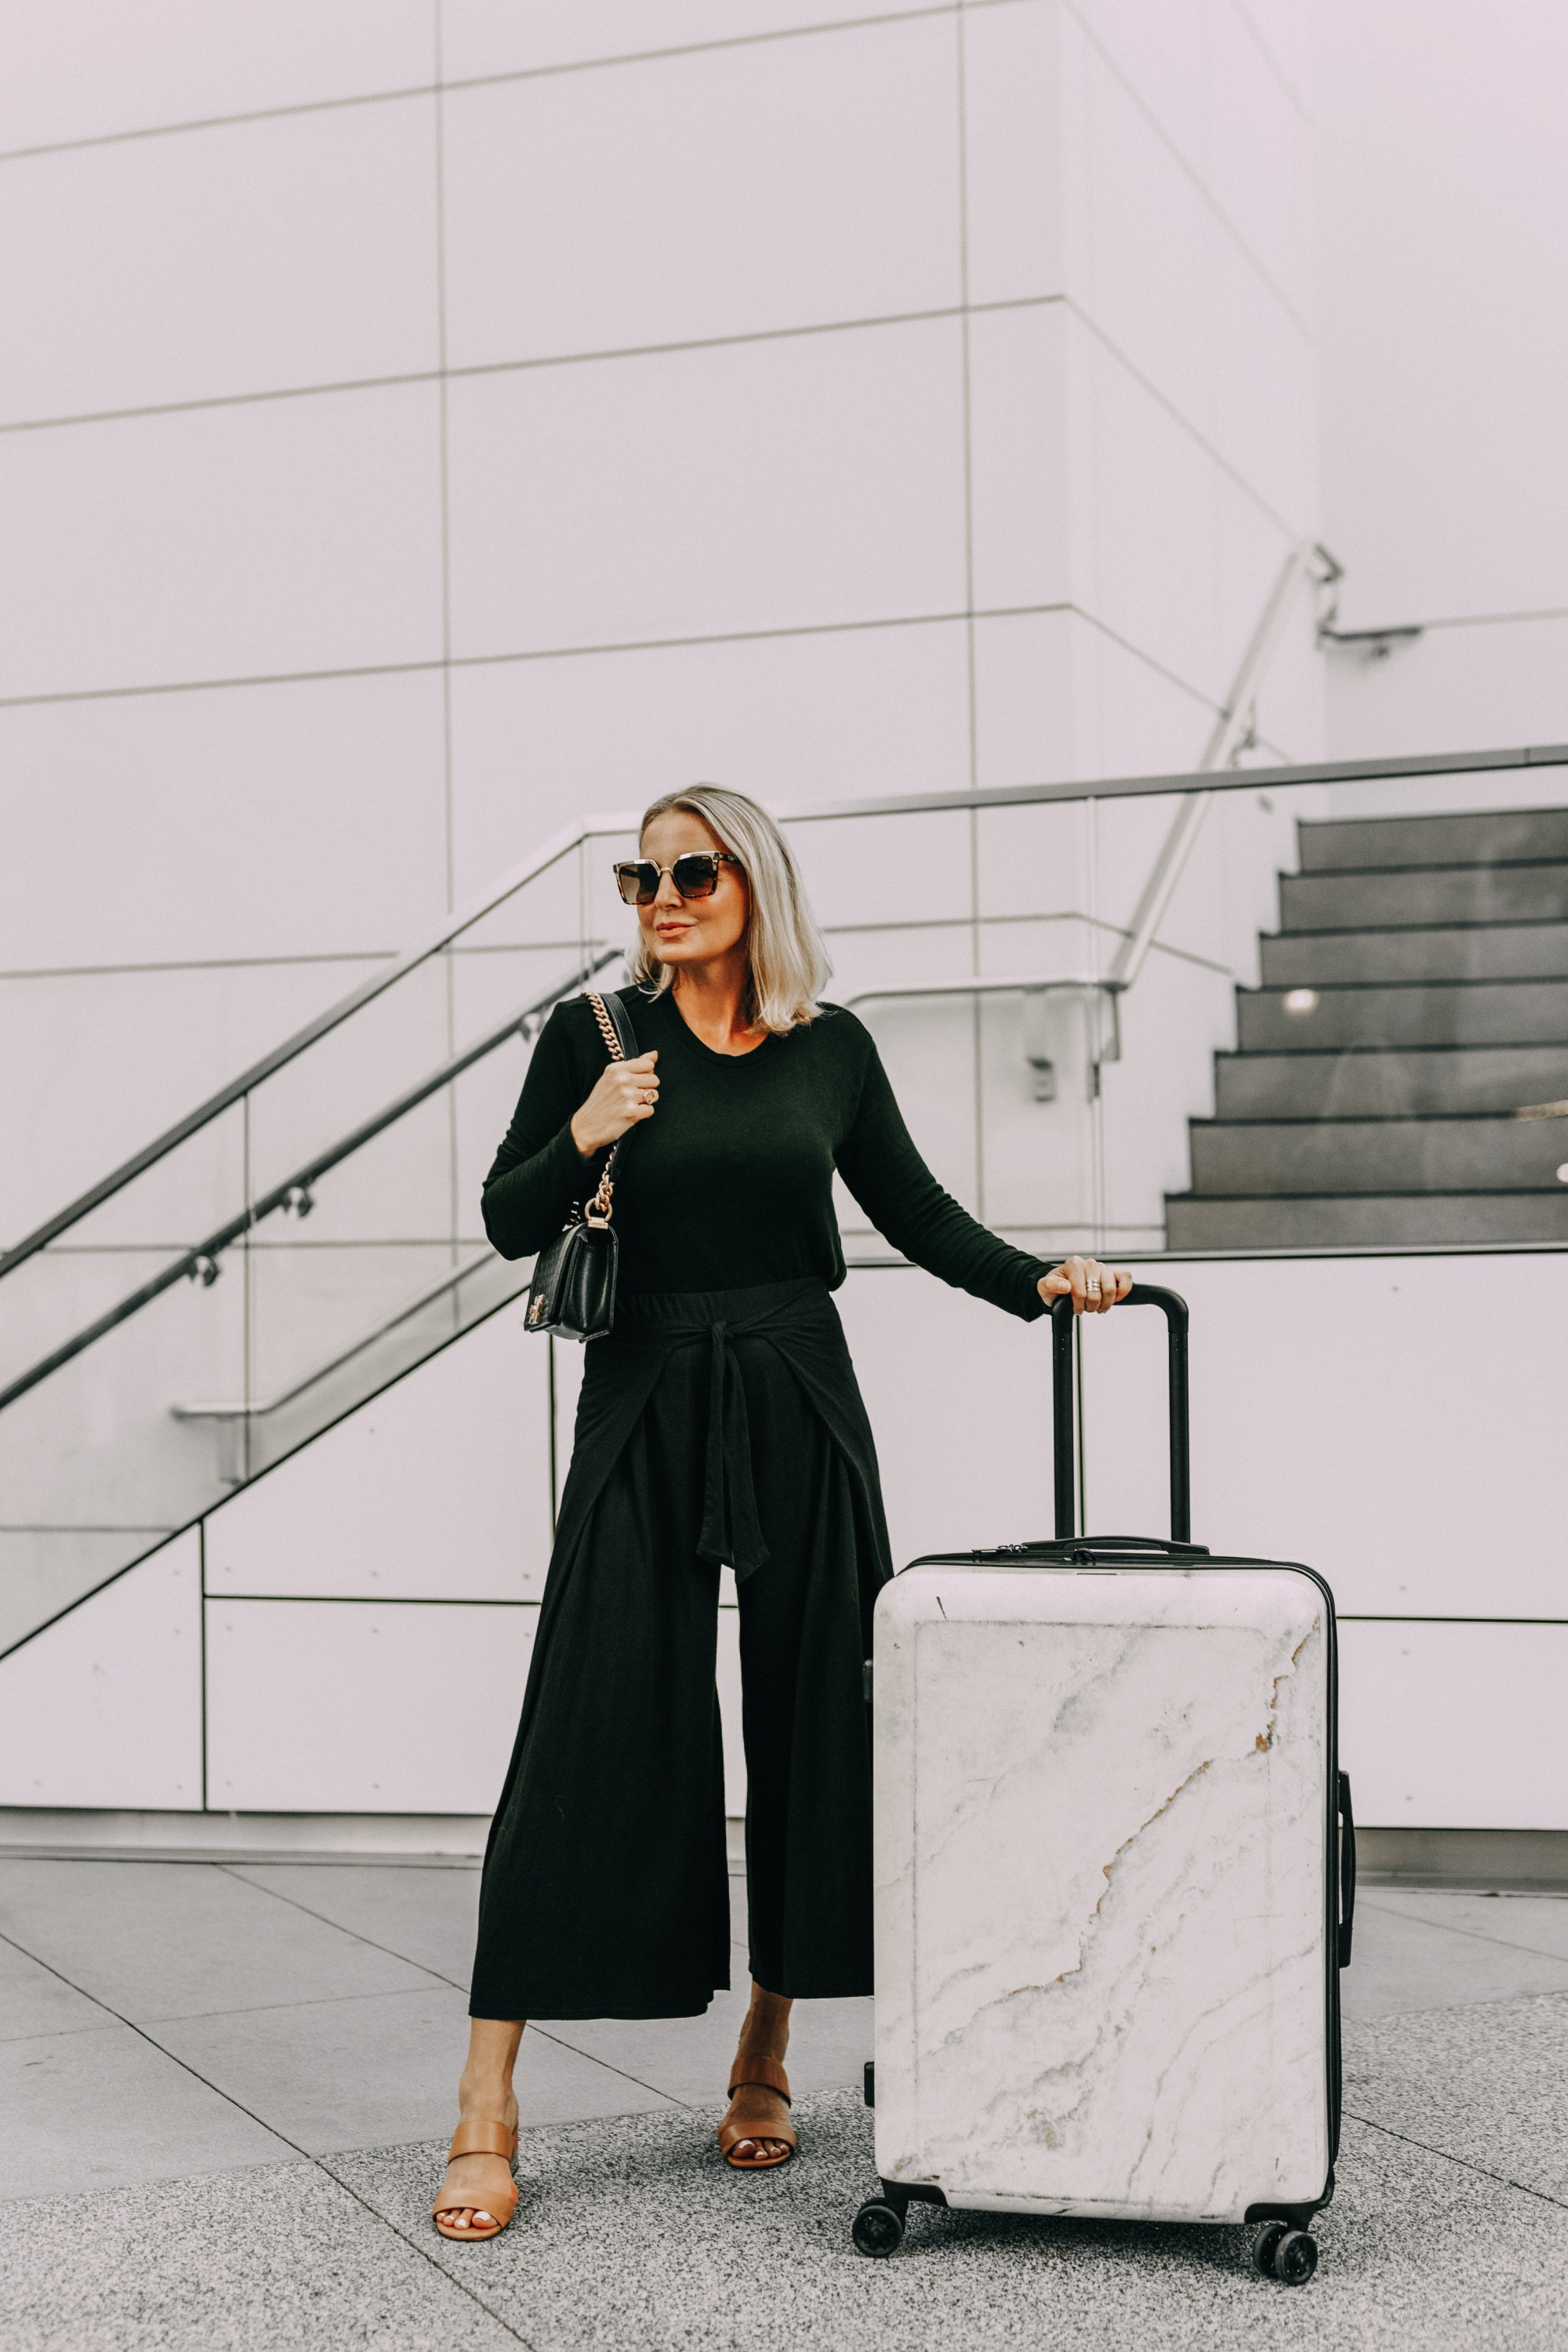 fashionable travel outfit